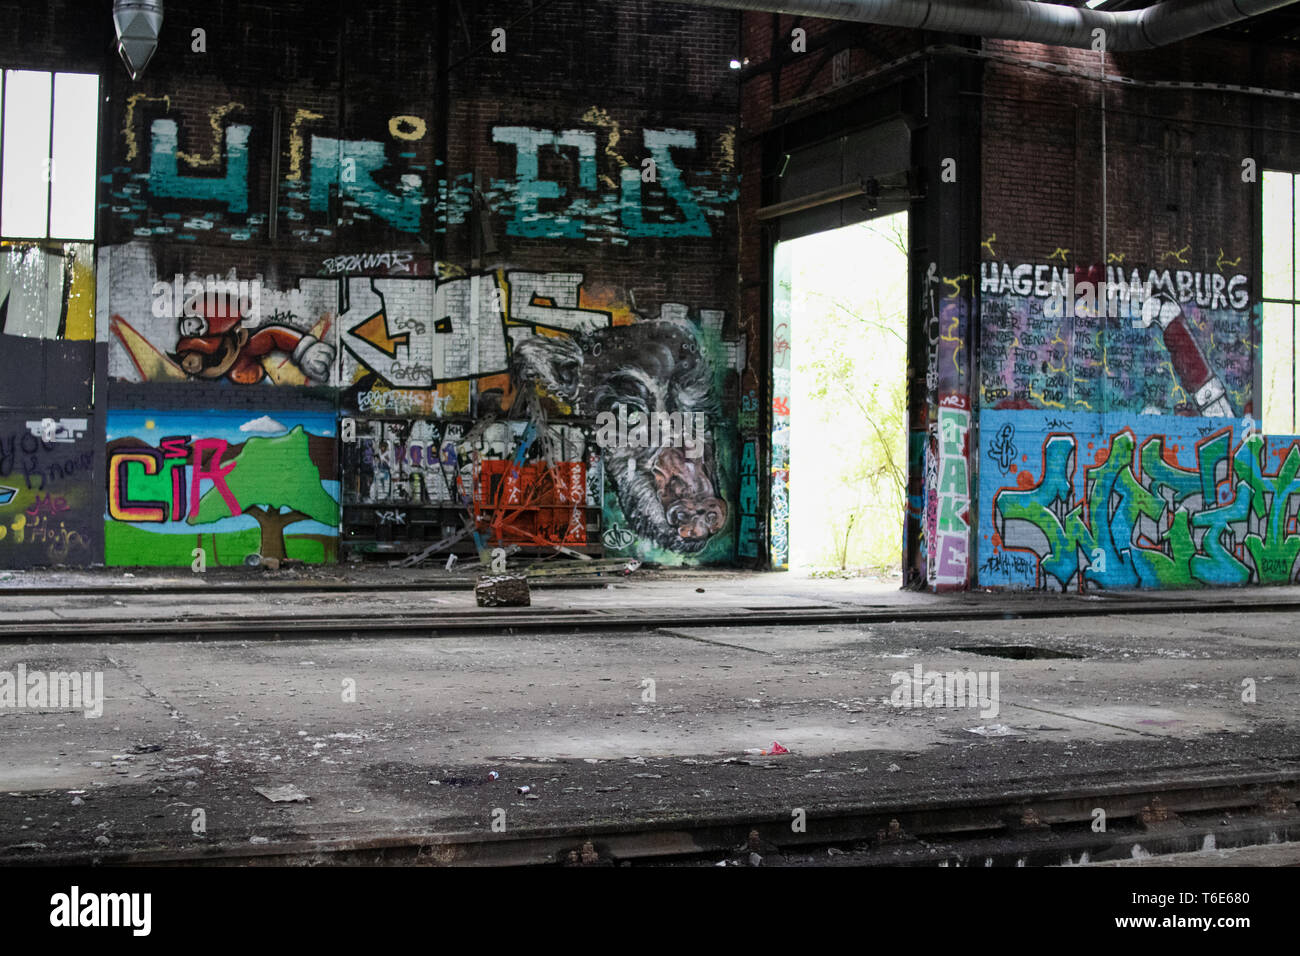 Graffiti wall at an old station in Germany - Stock Image